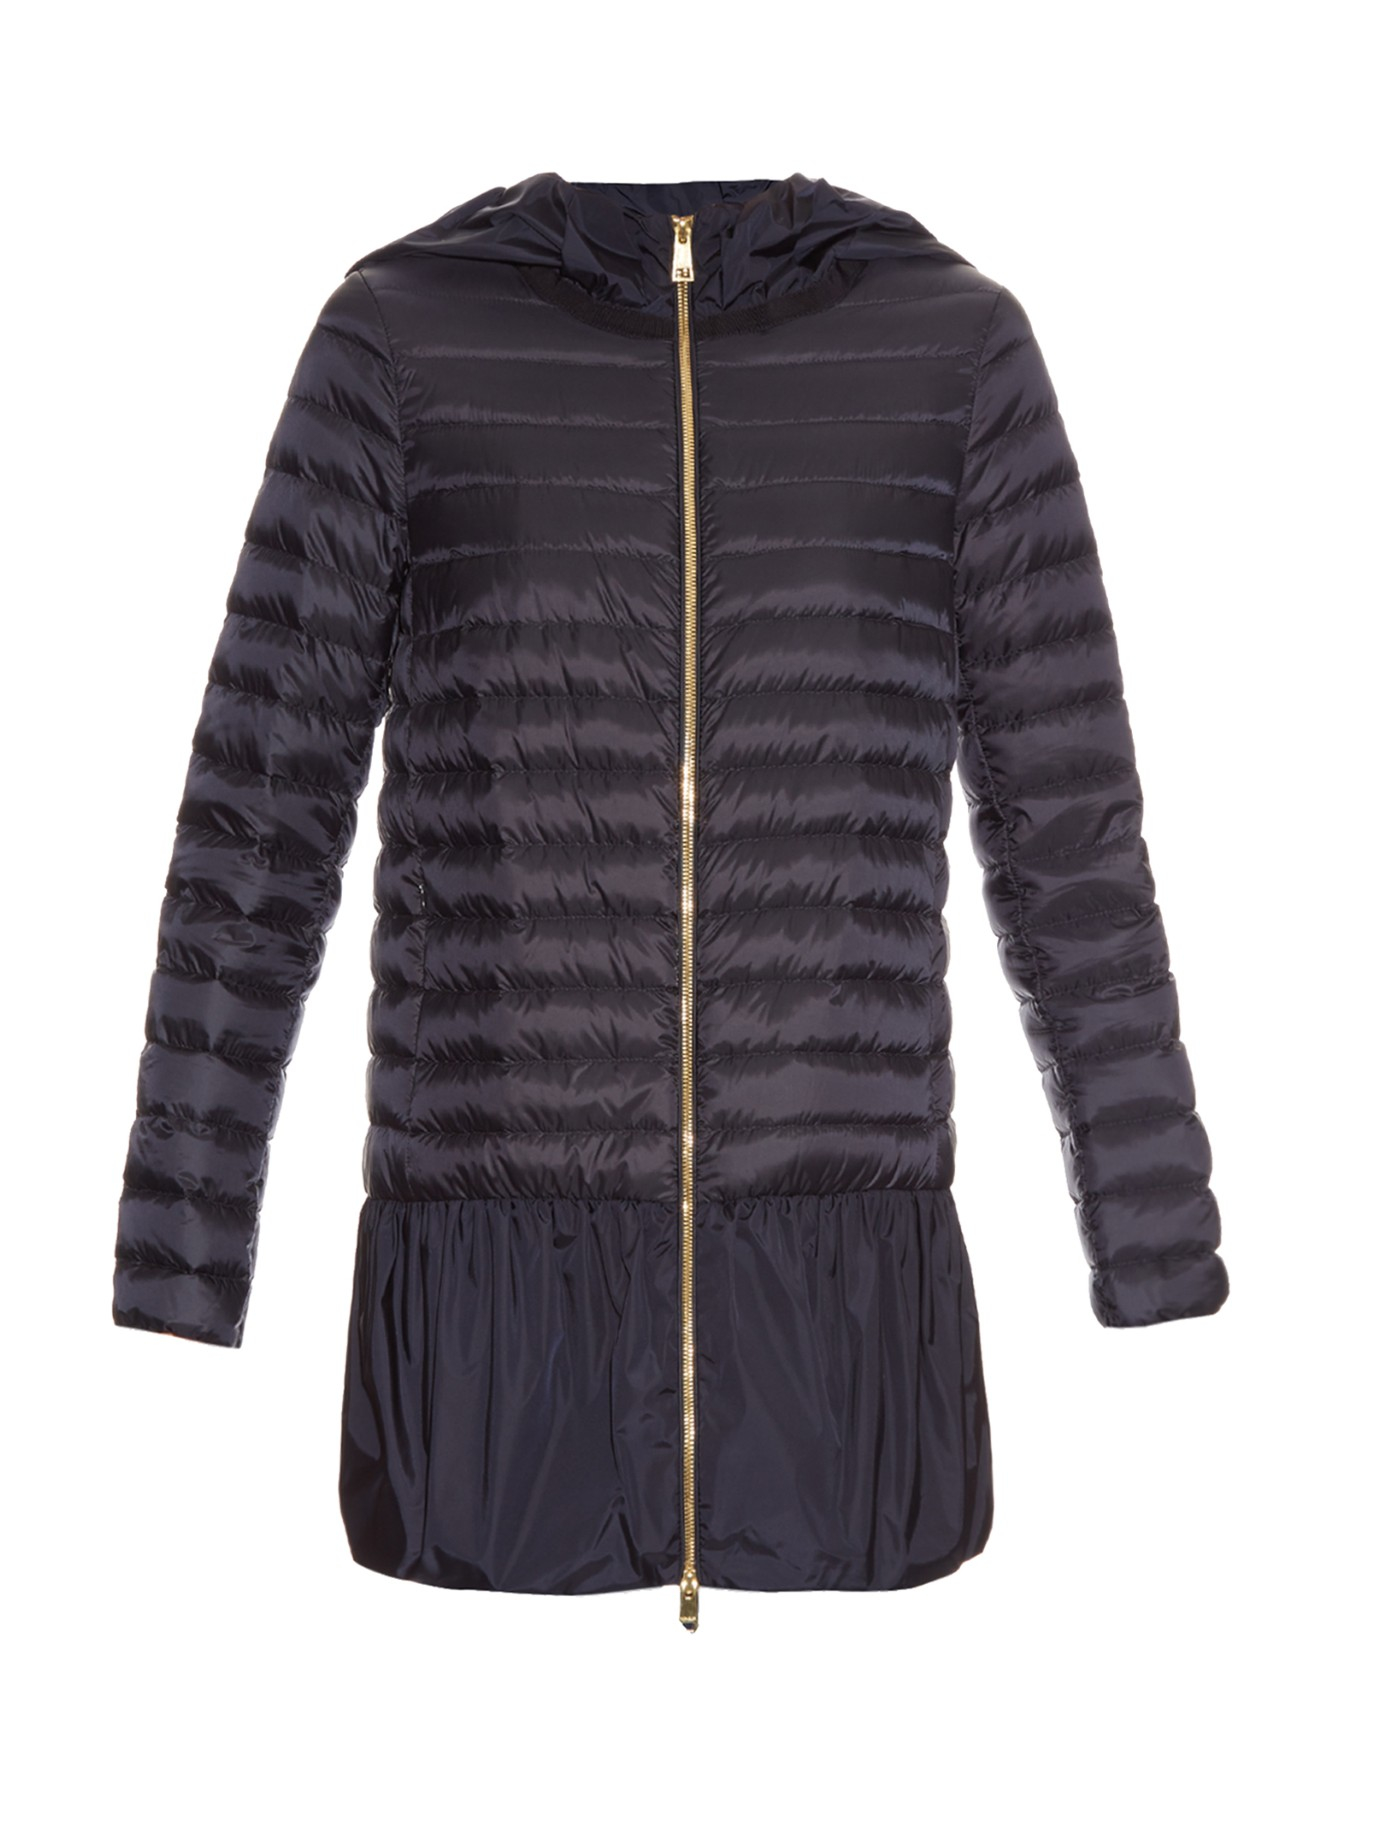 Moncler Dragonnet Quilted Down Coat in Black | Lyst